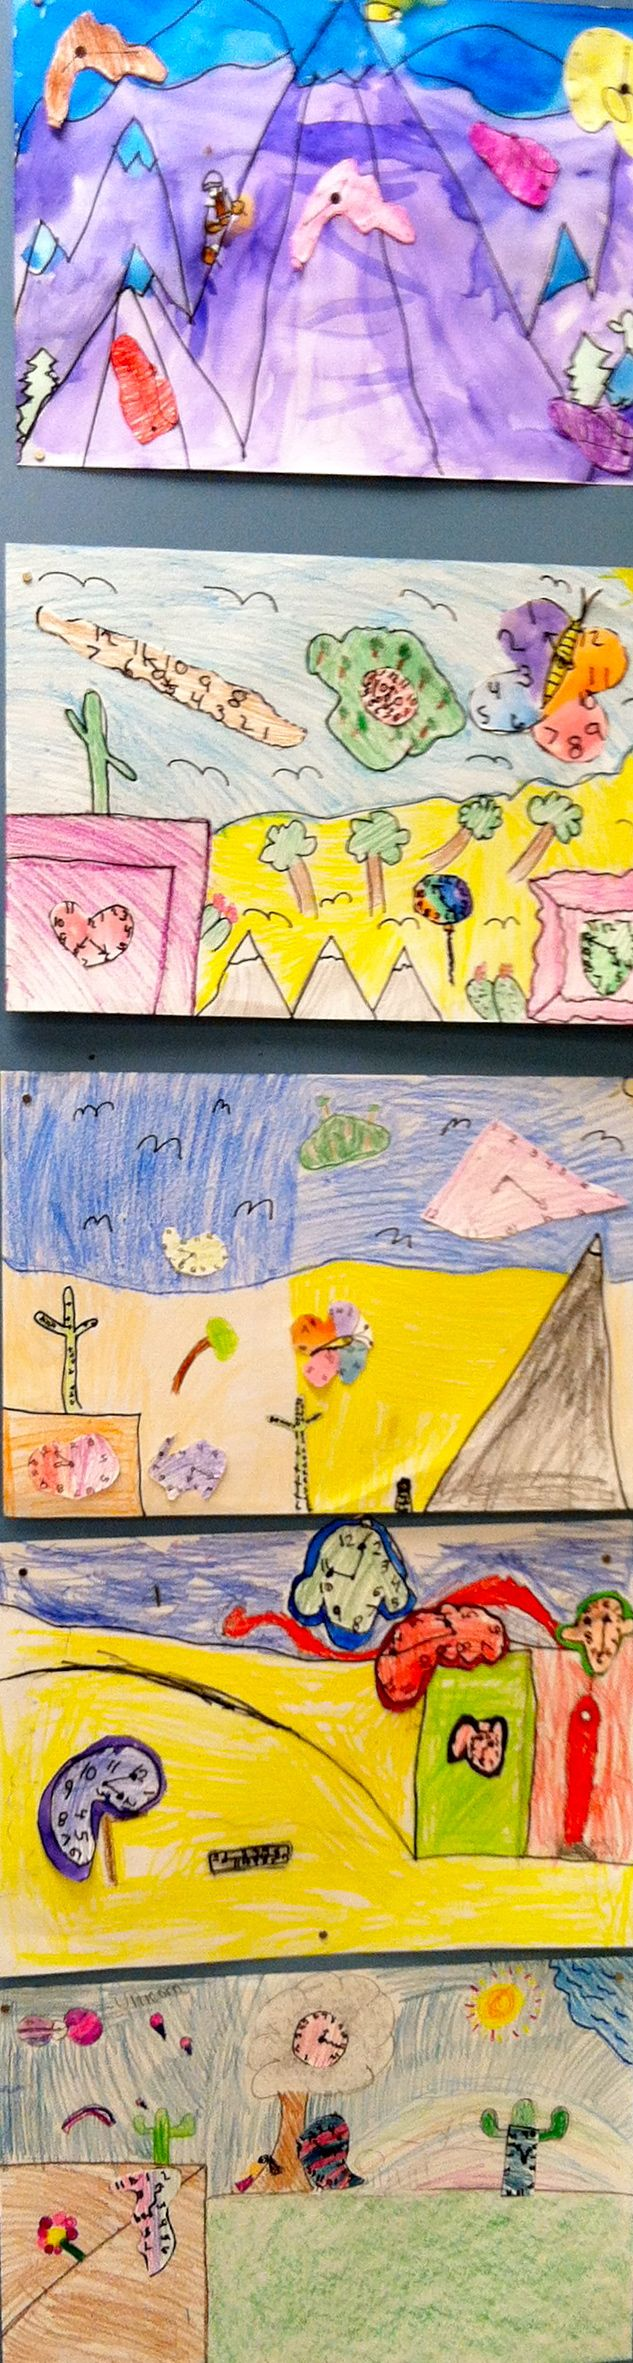 """Telling time the unusual way with Salvador Dali! Get this really fun and """"unusual"""" art lesson to help reinforce time telling and Dali's art."""